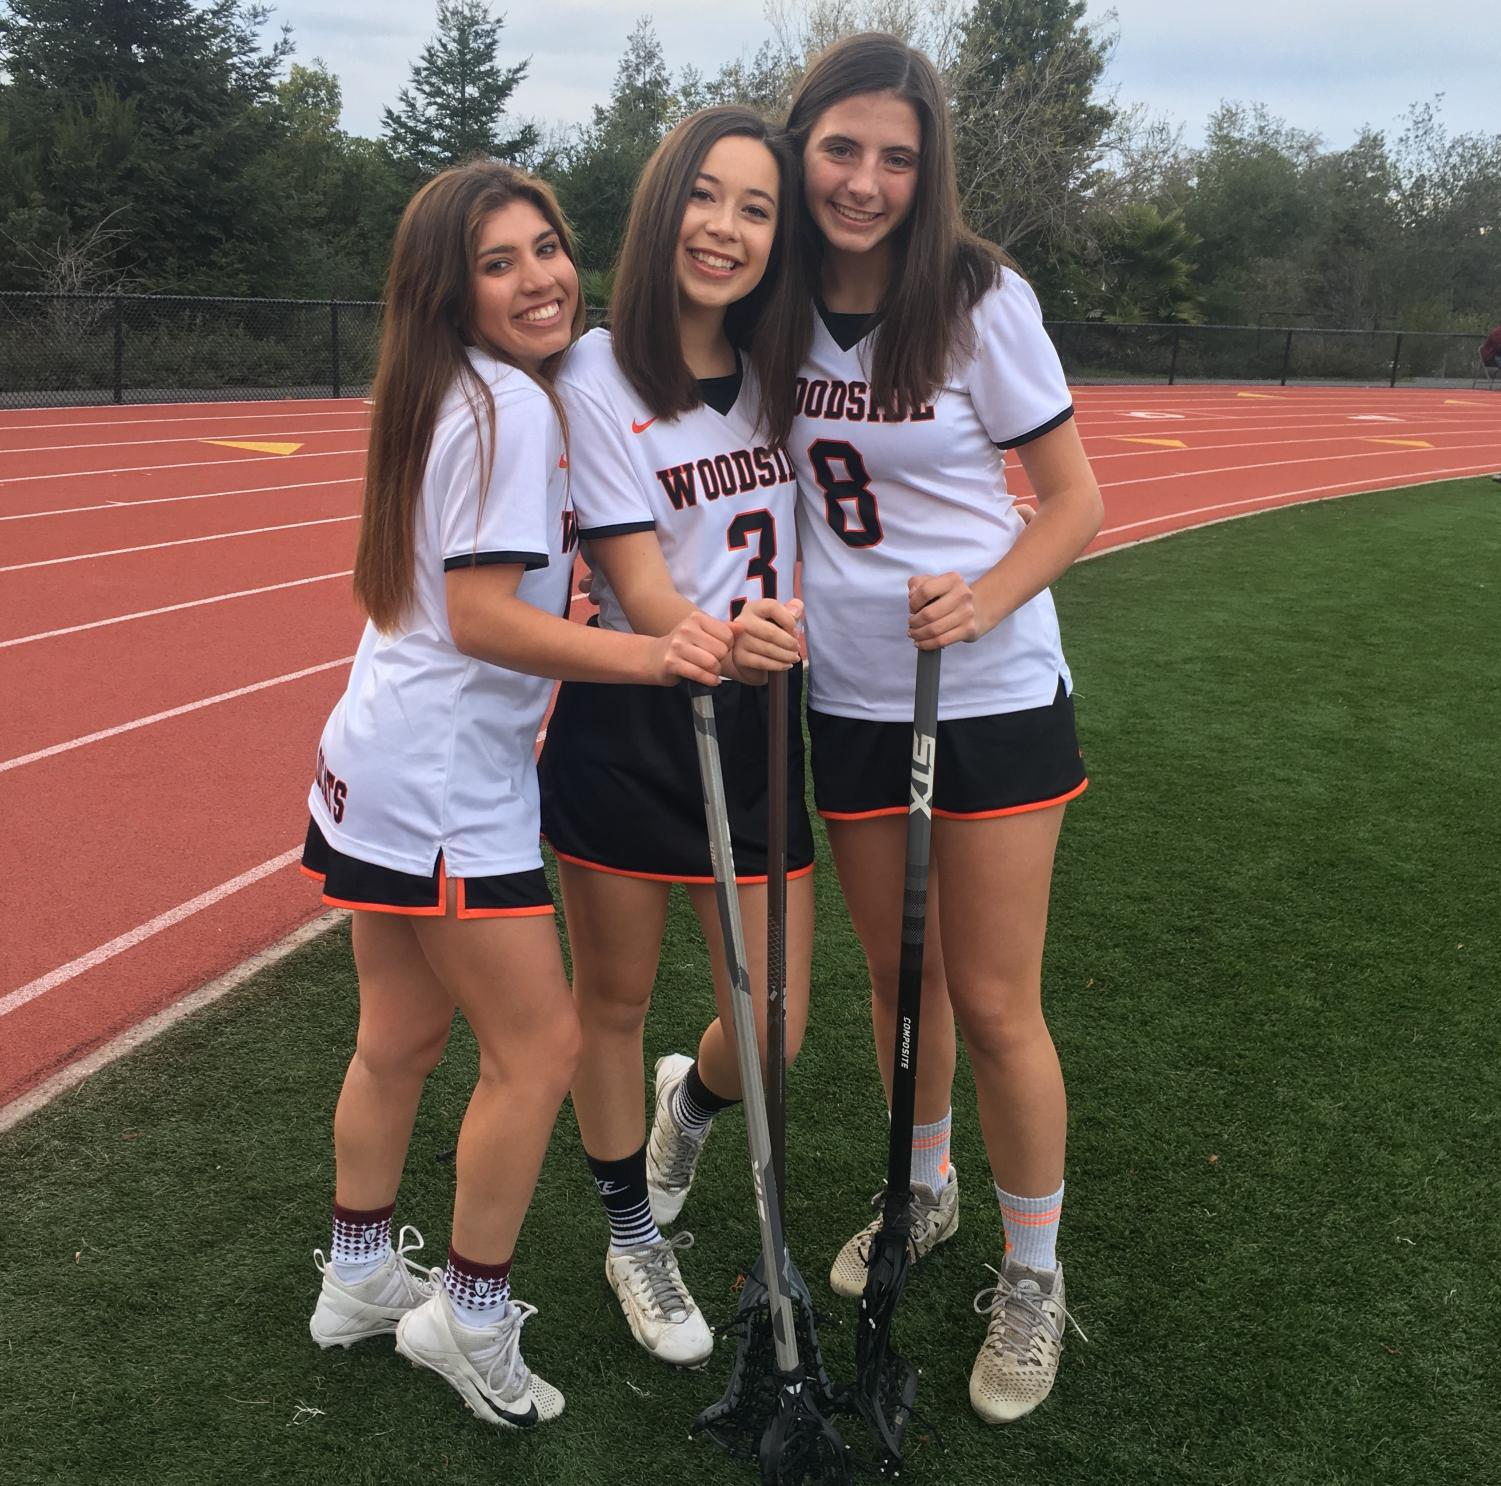 Three out of four of the varsity team captains of Woodside High girls lacrosse.